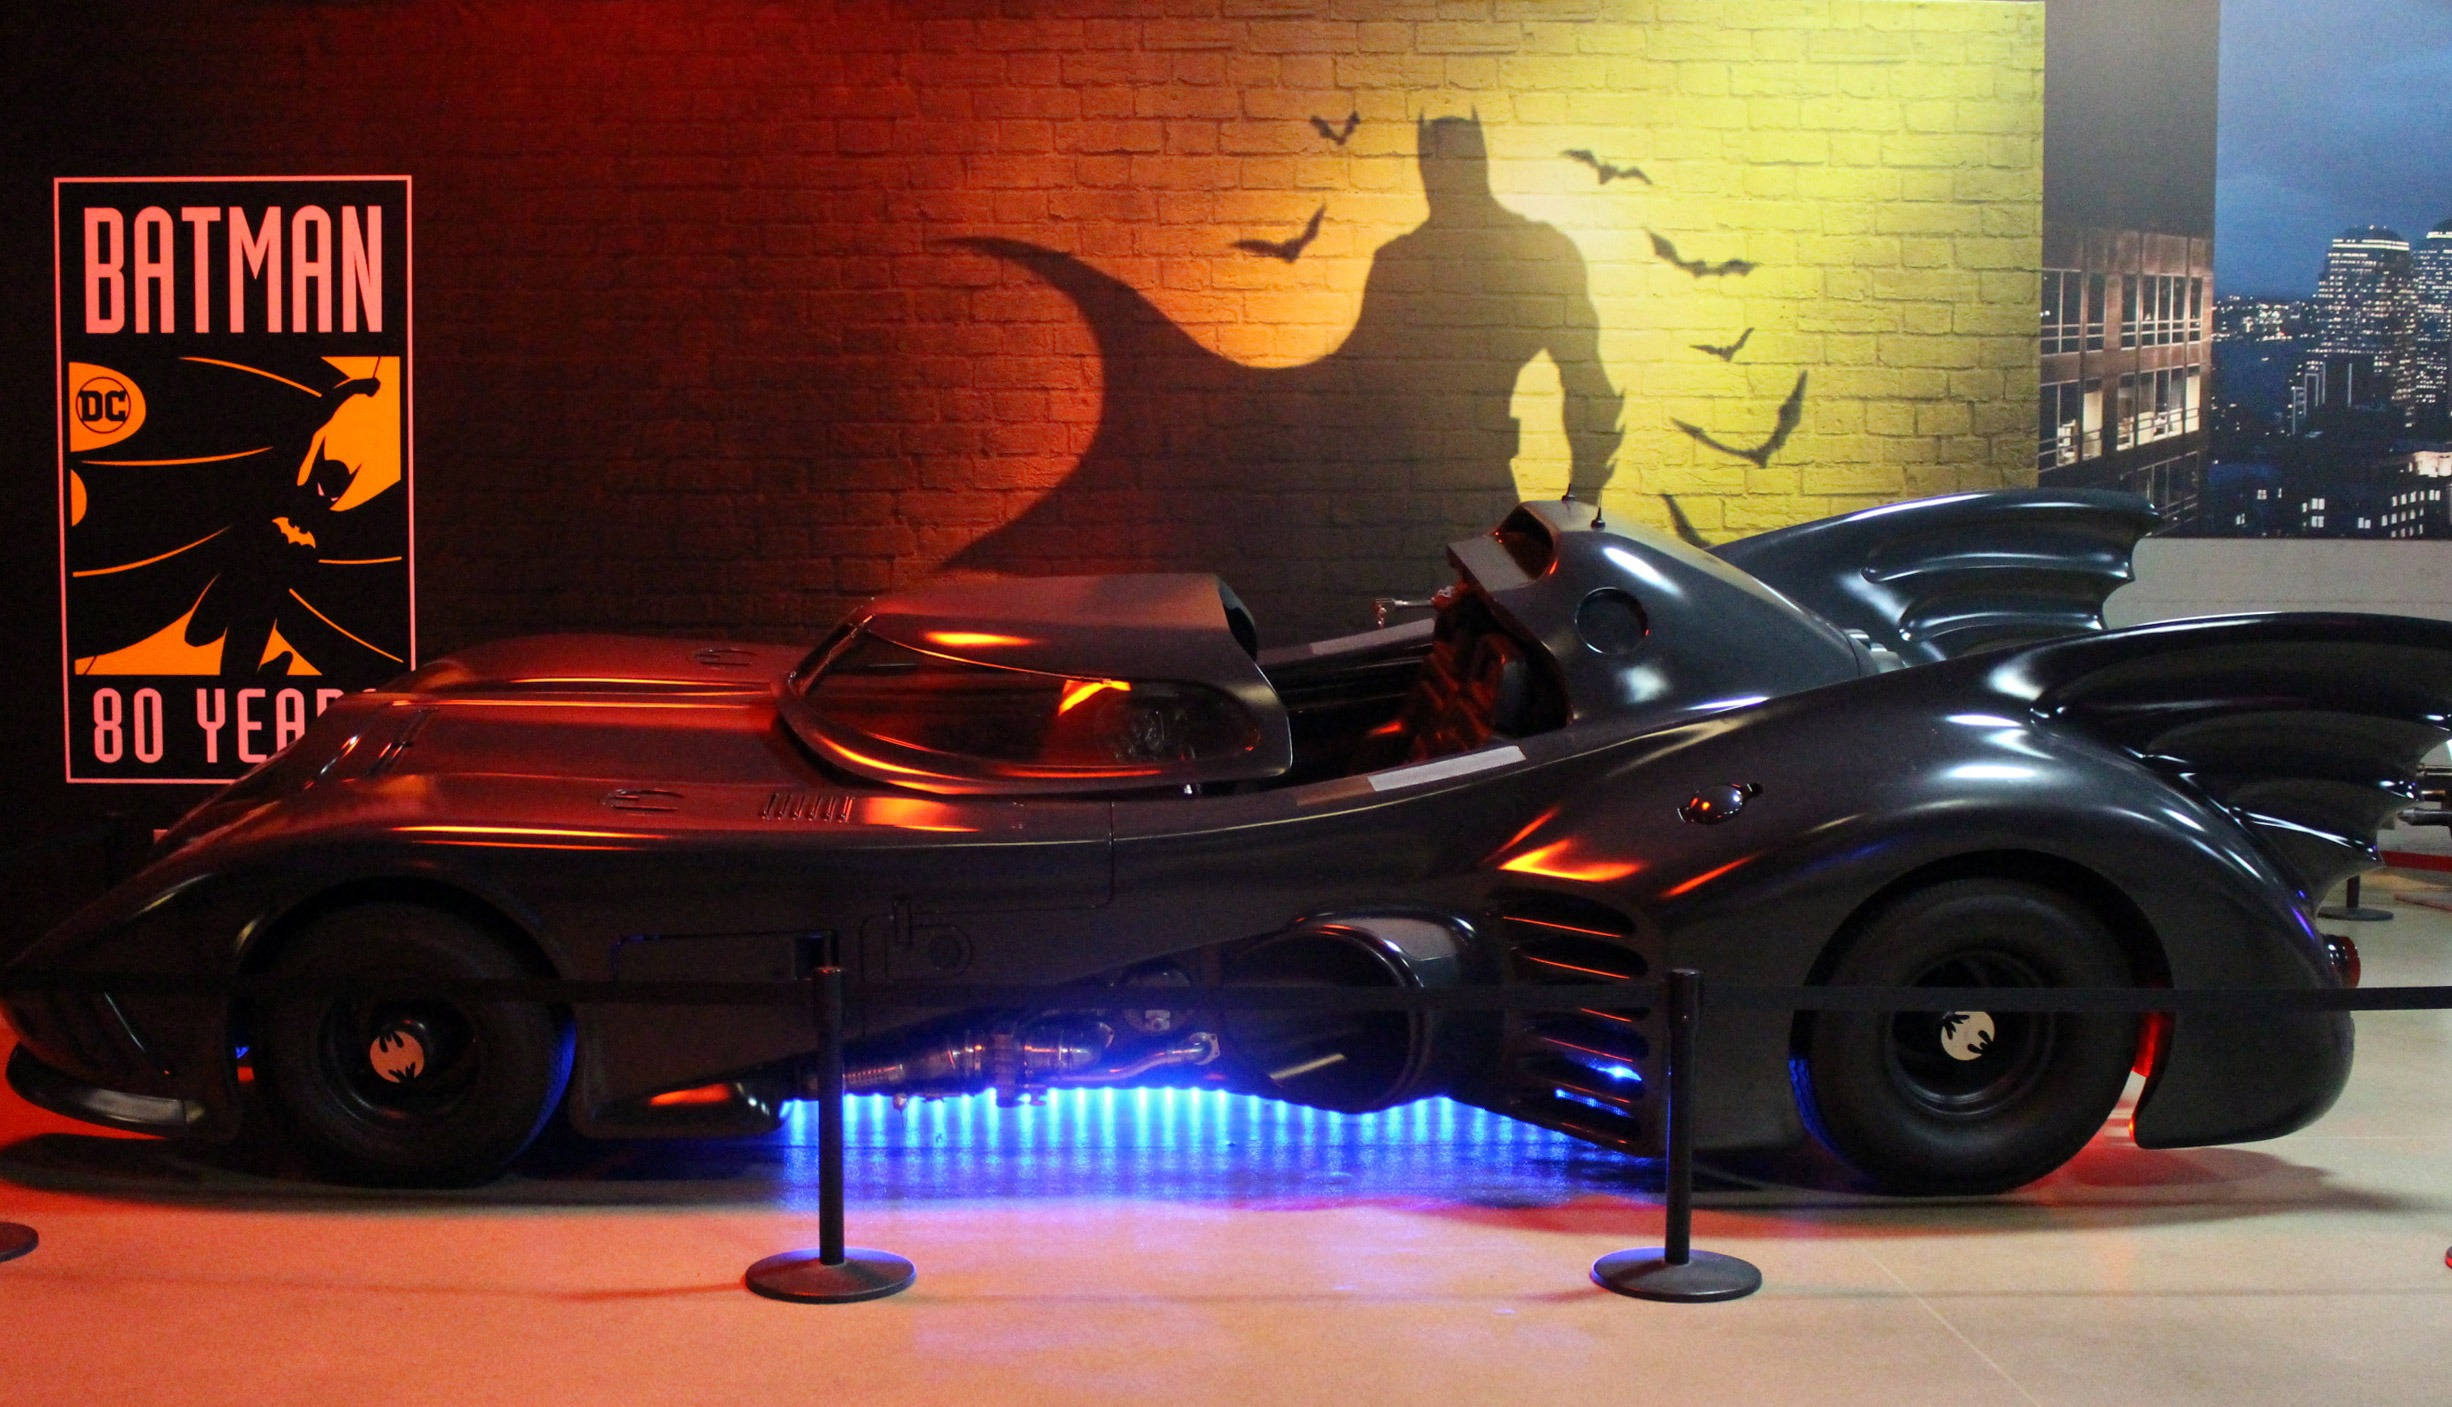 Batmobile 1989 Michael Keaton